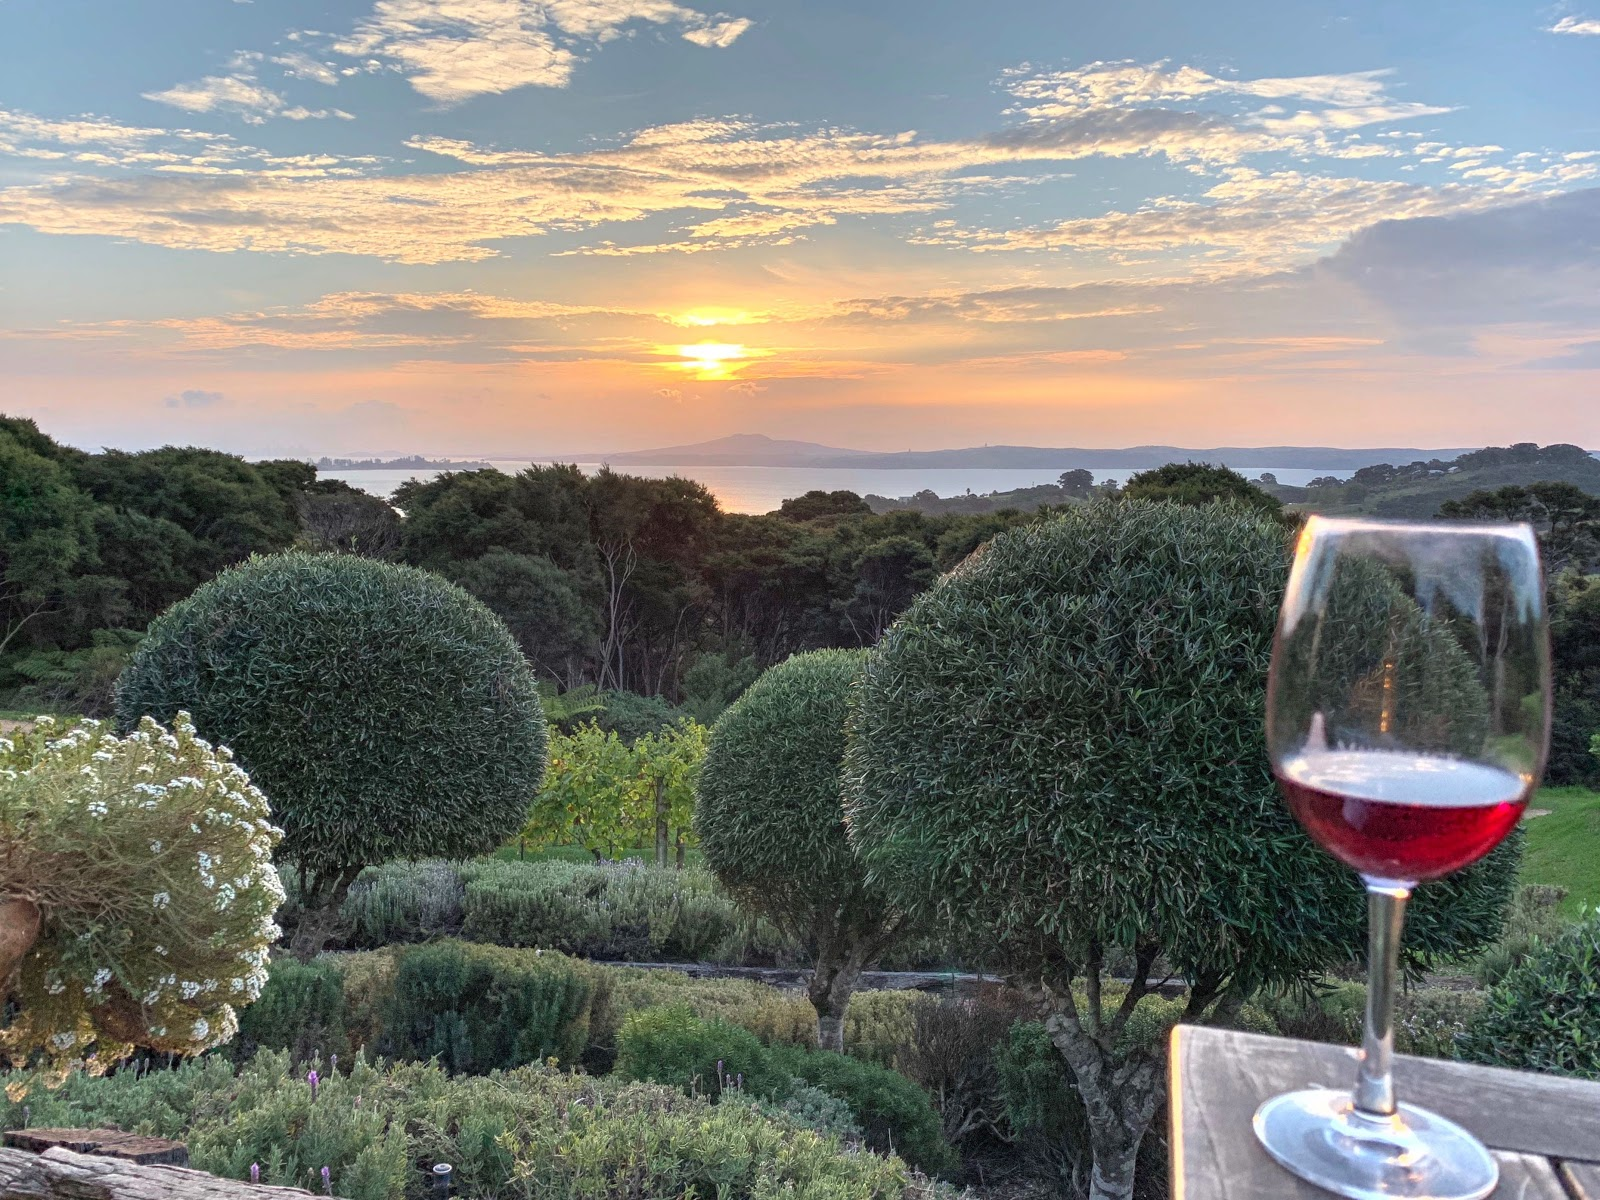 Trips to Auror's New Zealand office, particularly Waiheke (AKA wine island) are an added bonus!